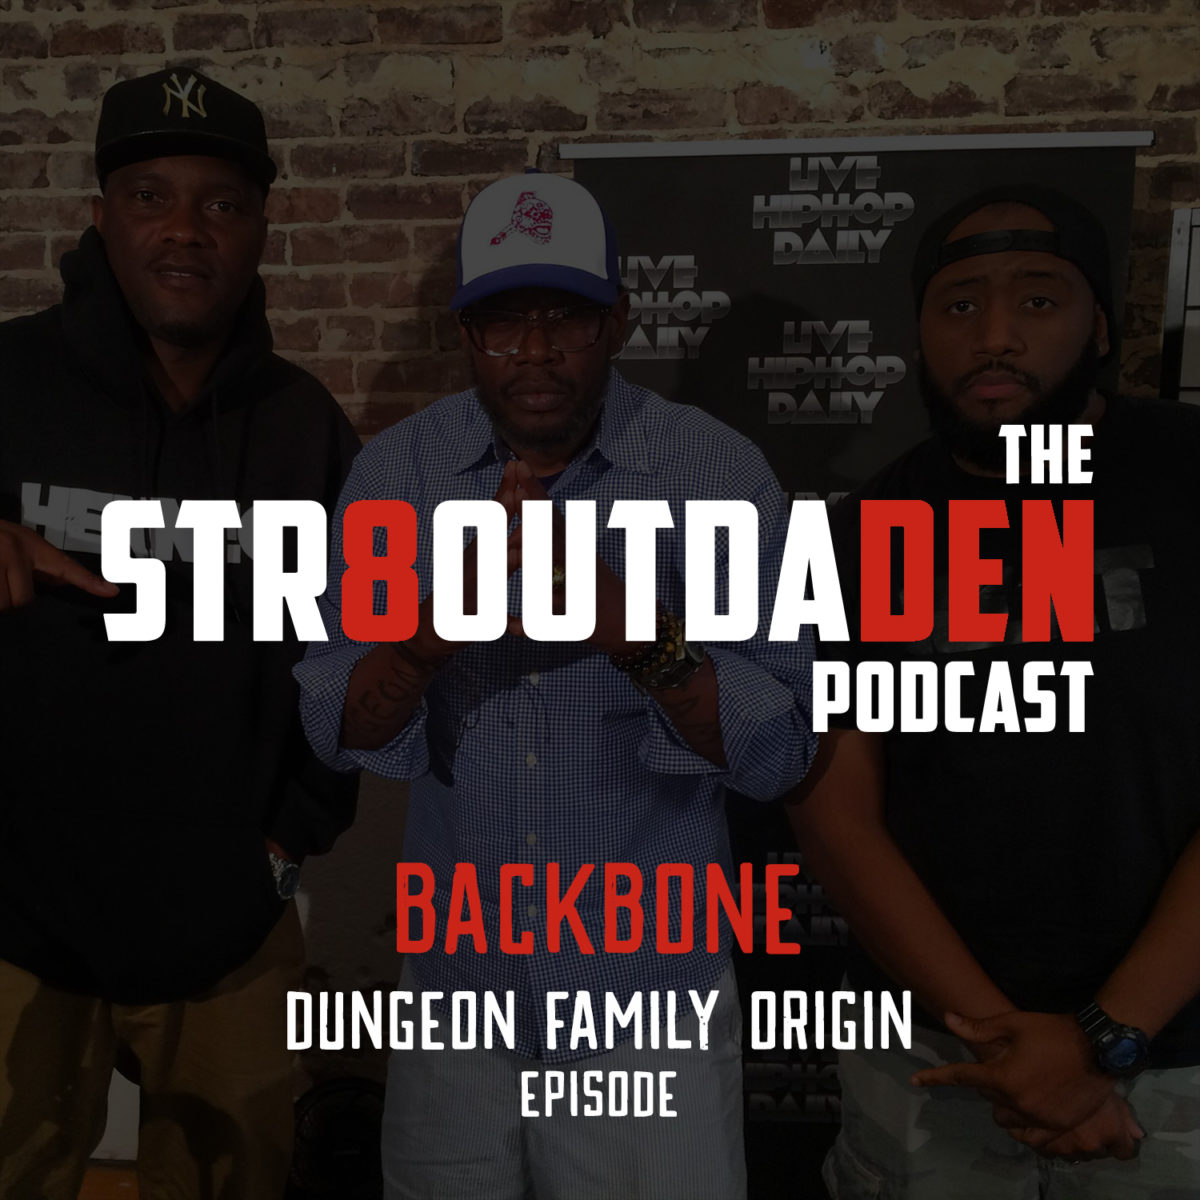 dungeon-family-origin-with-backbone